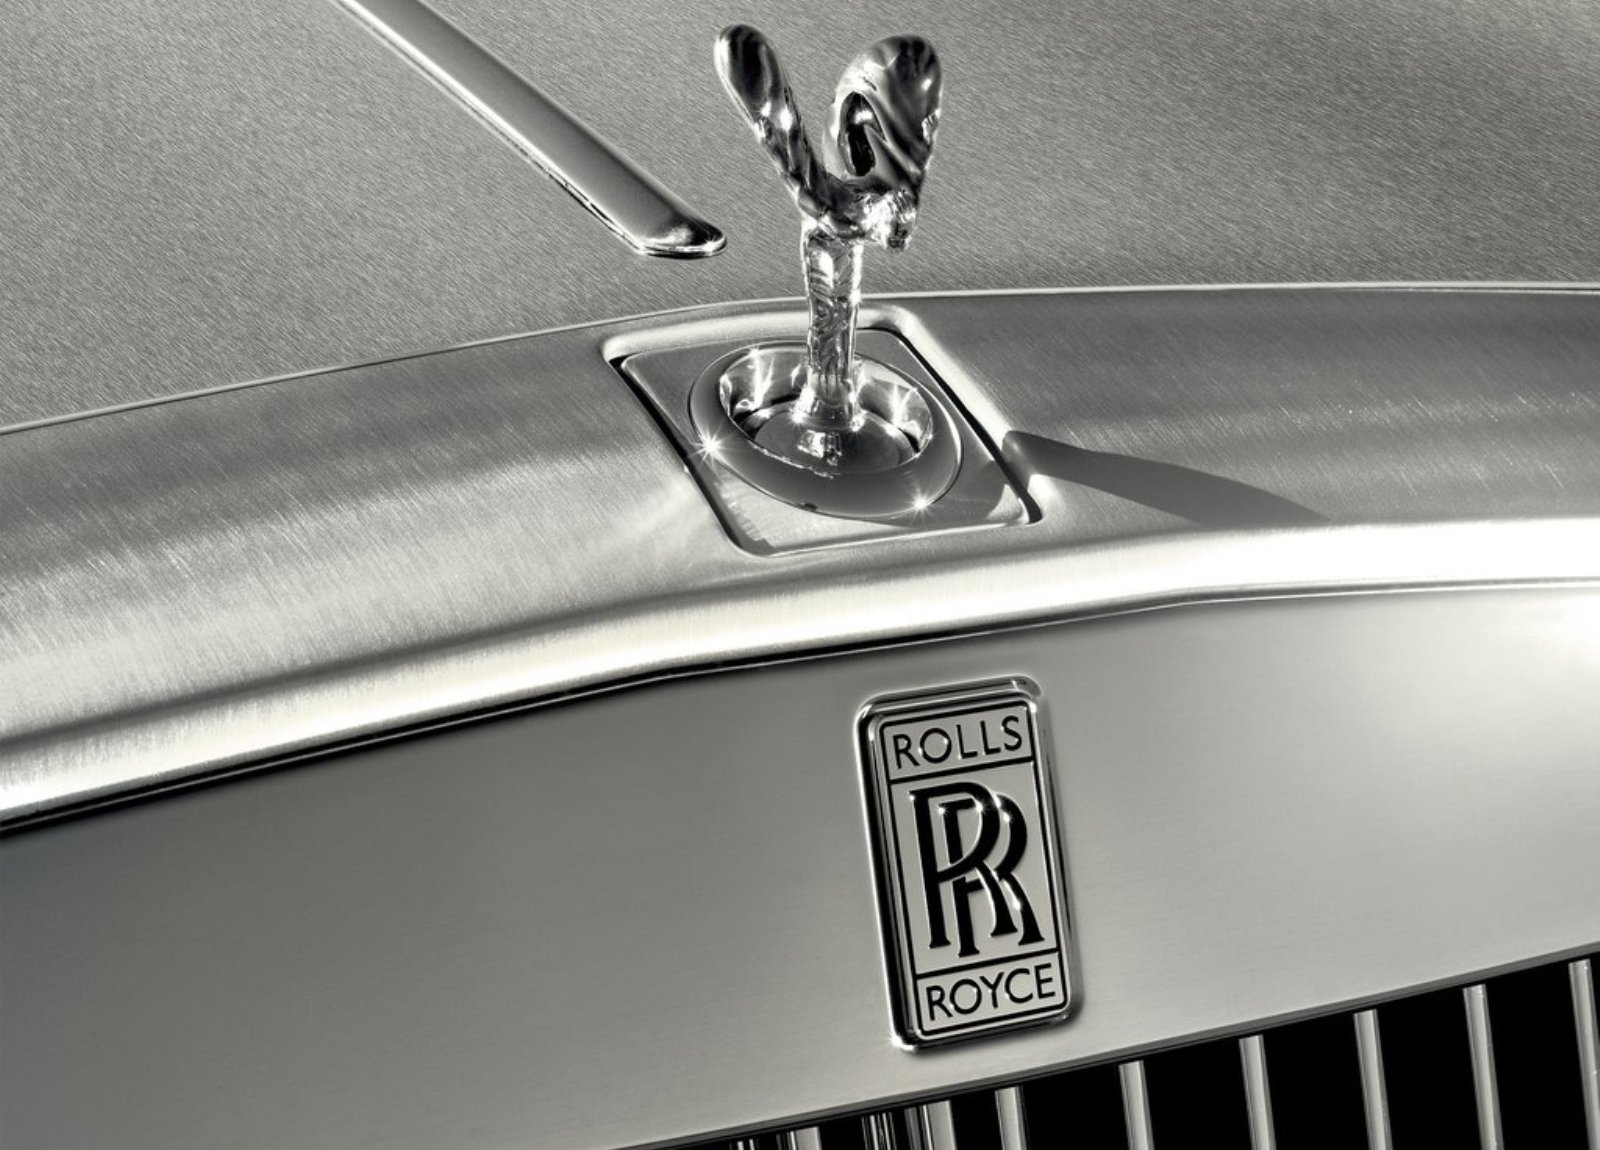 Future Rolls Royce Phantom will have carbonfibre body and plug-in hybrid drivetrain